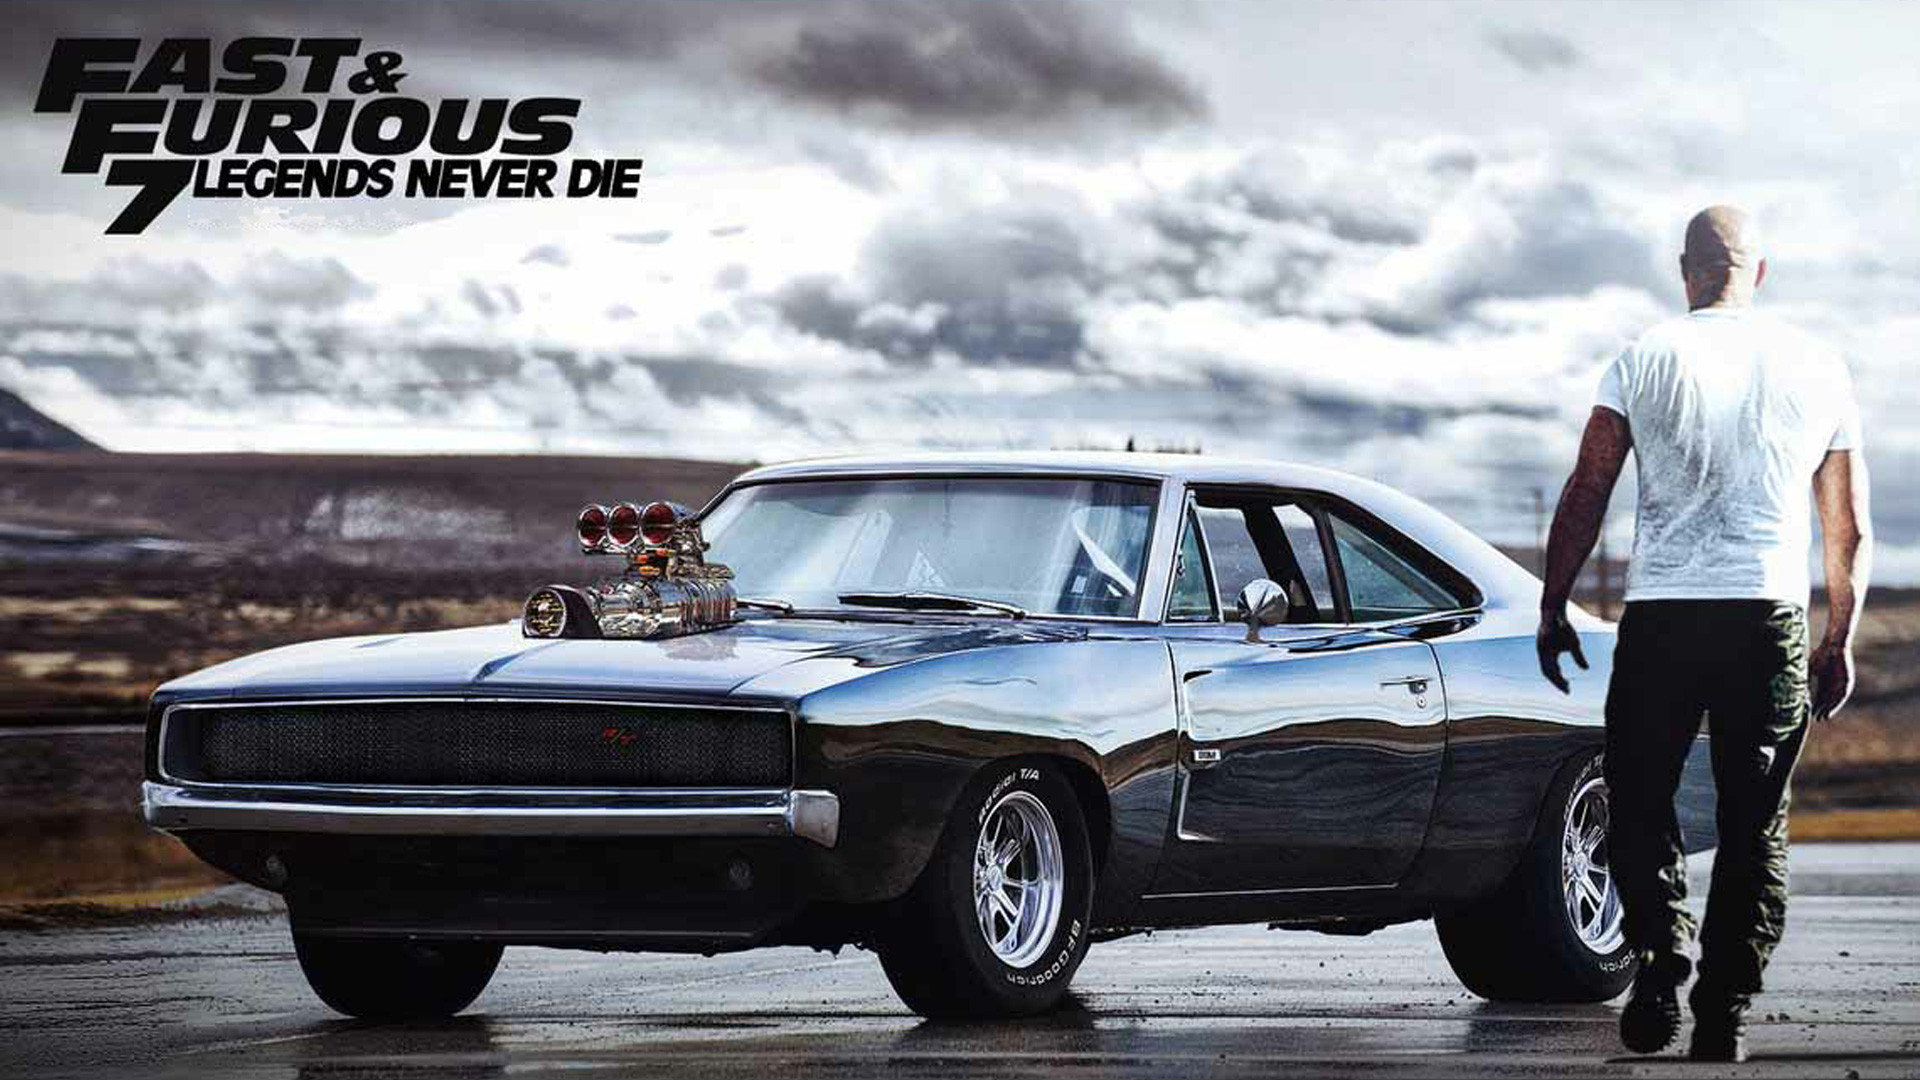 1920x1080 Fast and furious 7 car Wallpaper - | wallpapers hd | Pinterest | Car  wallpapers and Cars